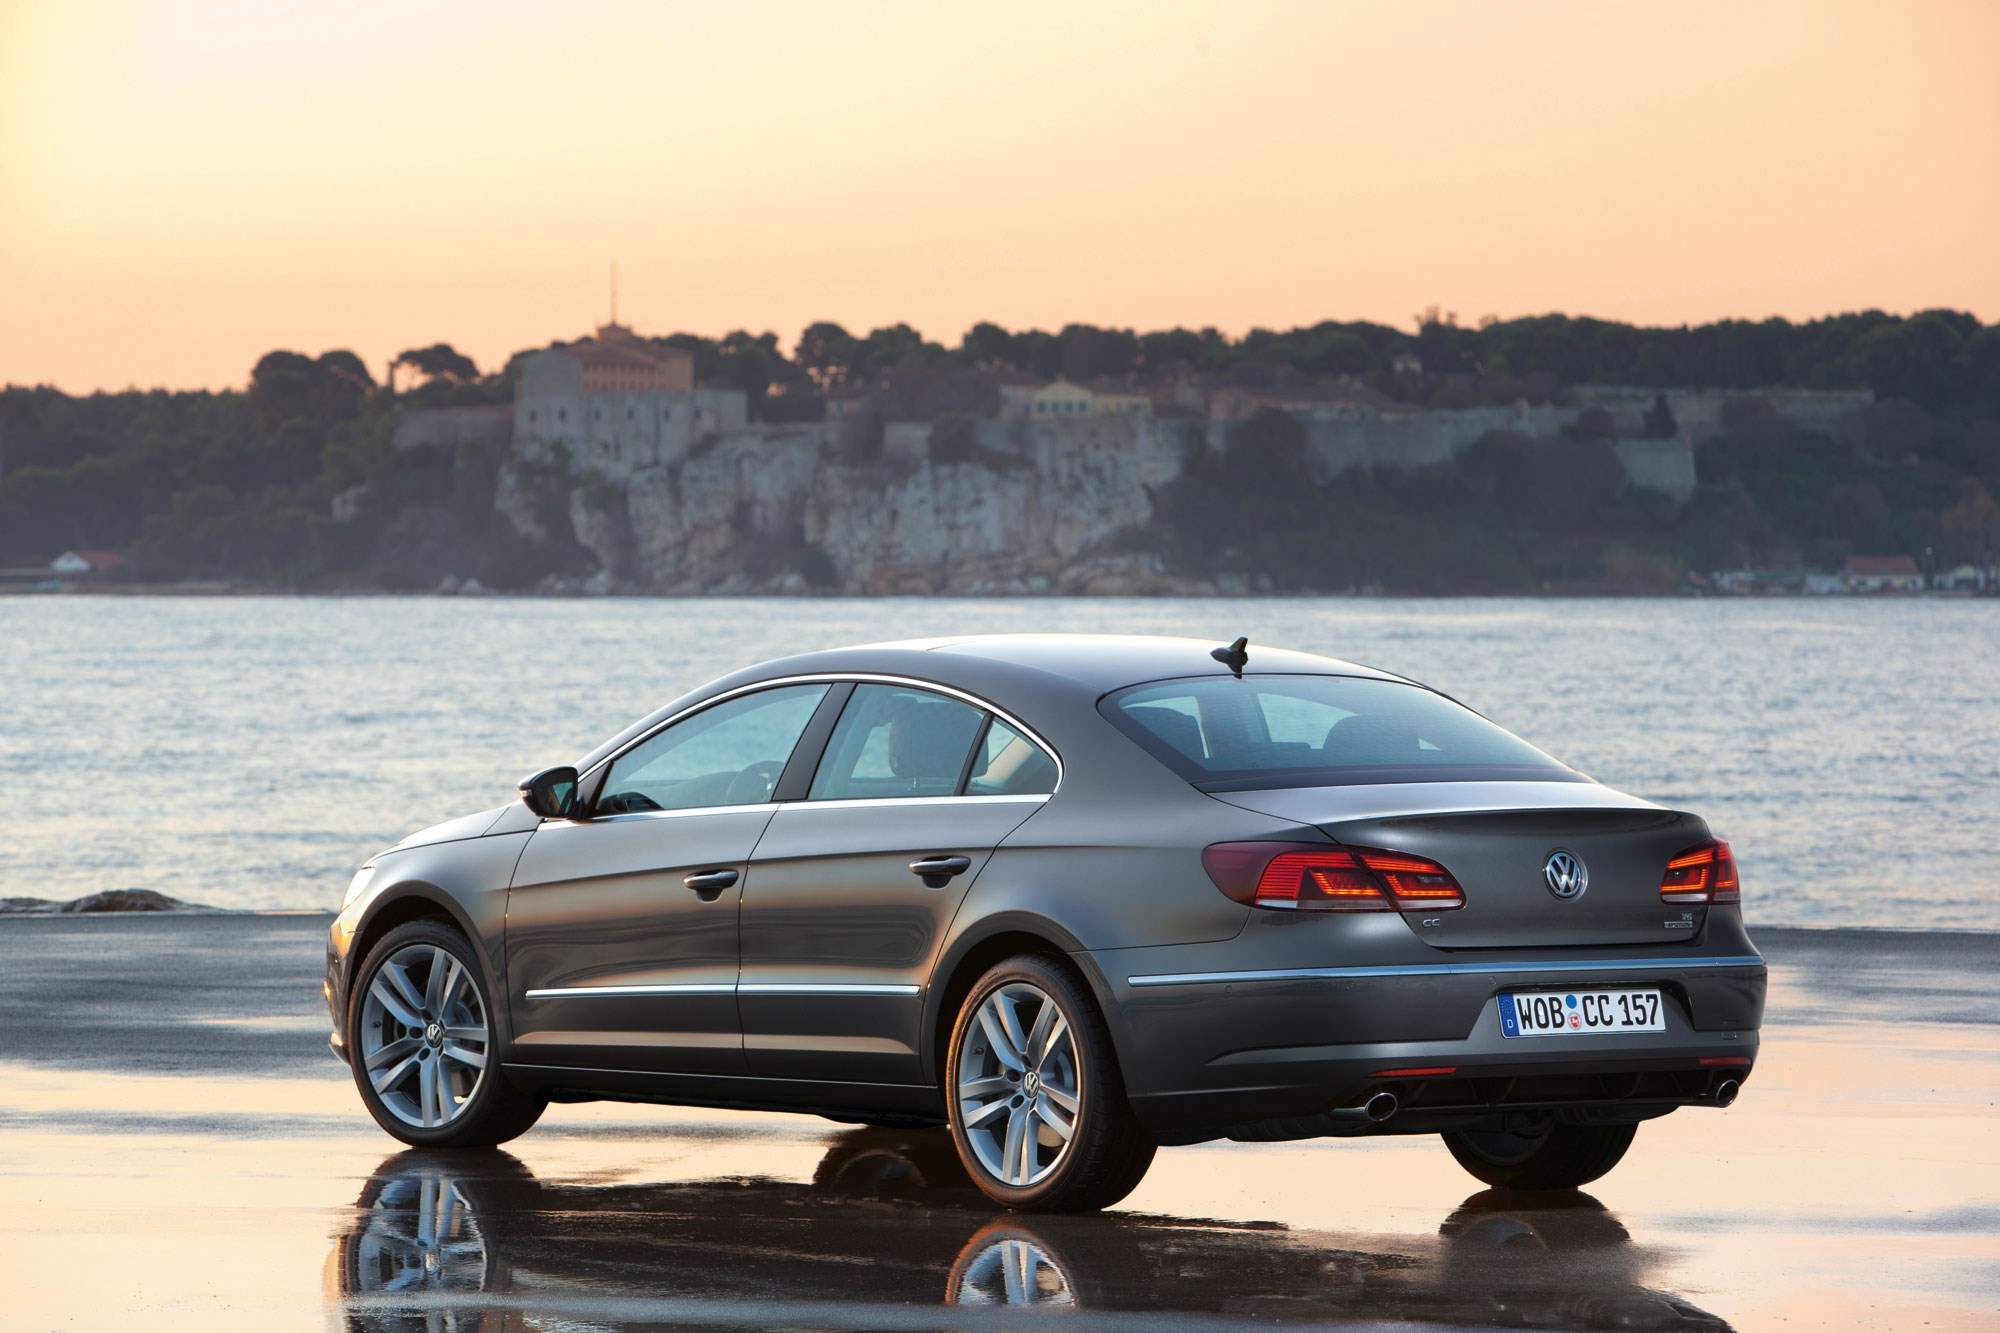 vw cc 2 0 tdi 177 dsg 2015 review car magazine. Black Bedroom Furniture Sets. Home Design Ideas